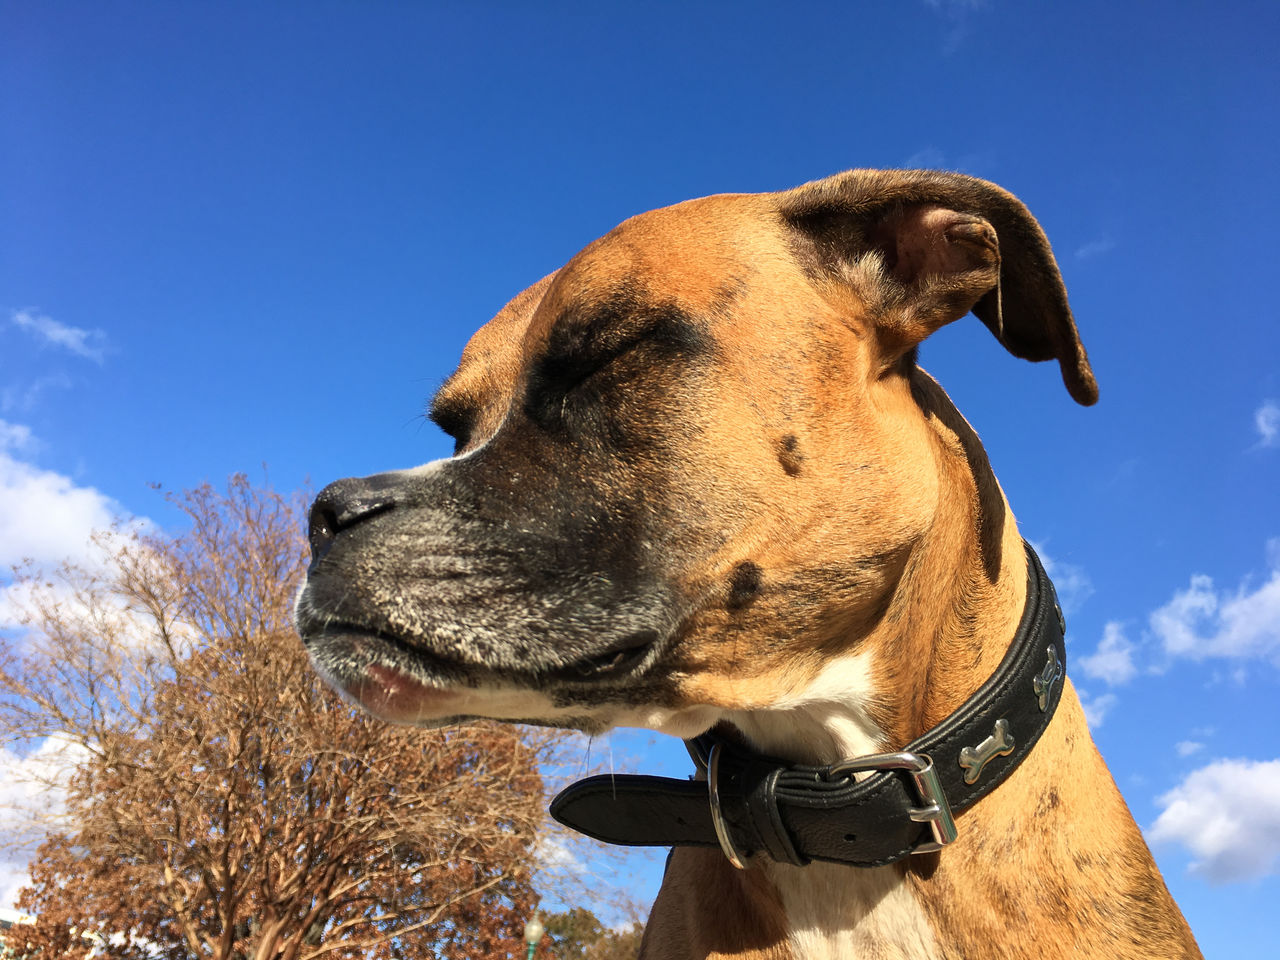 Animal Themes Animals In The Wild Blue Boxer Dog Close-up Day Domestic Animals Low Angle View Mammal Nature No People One Animal Outdoors Profile Sky Sunlight